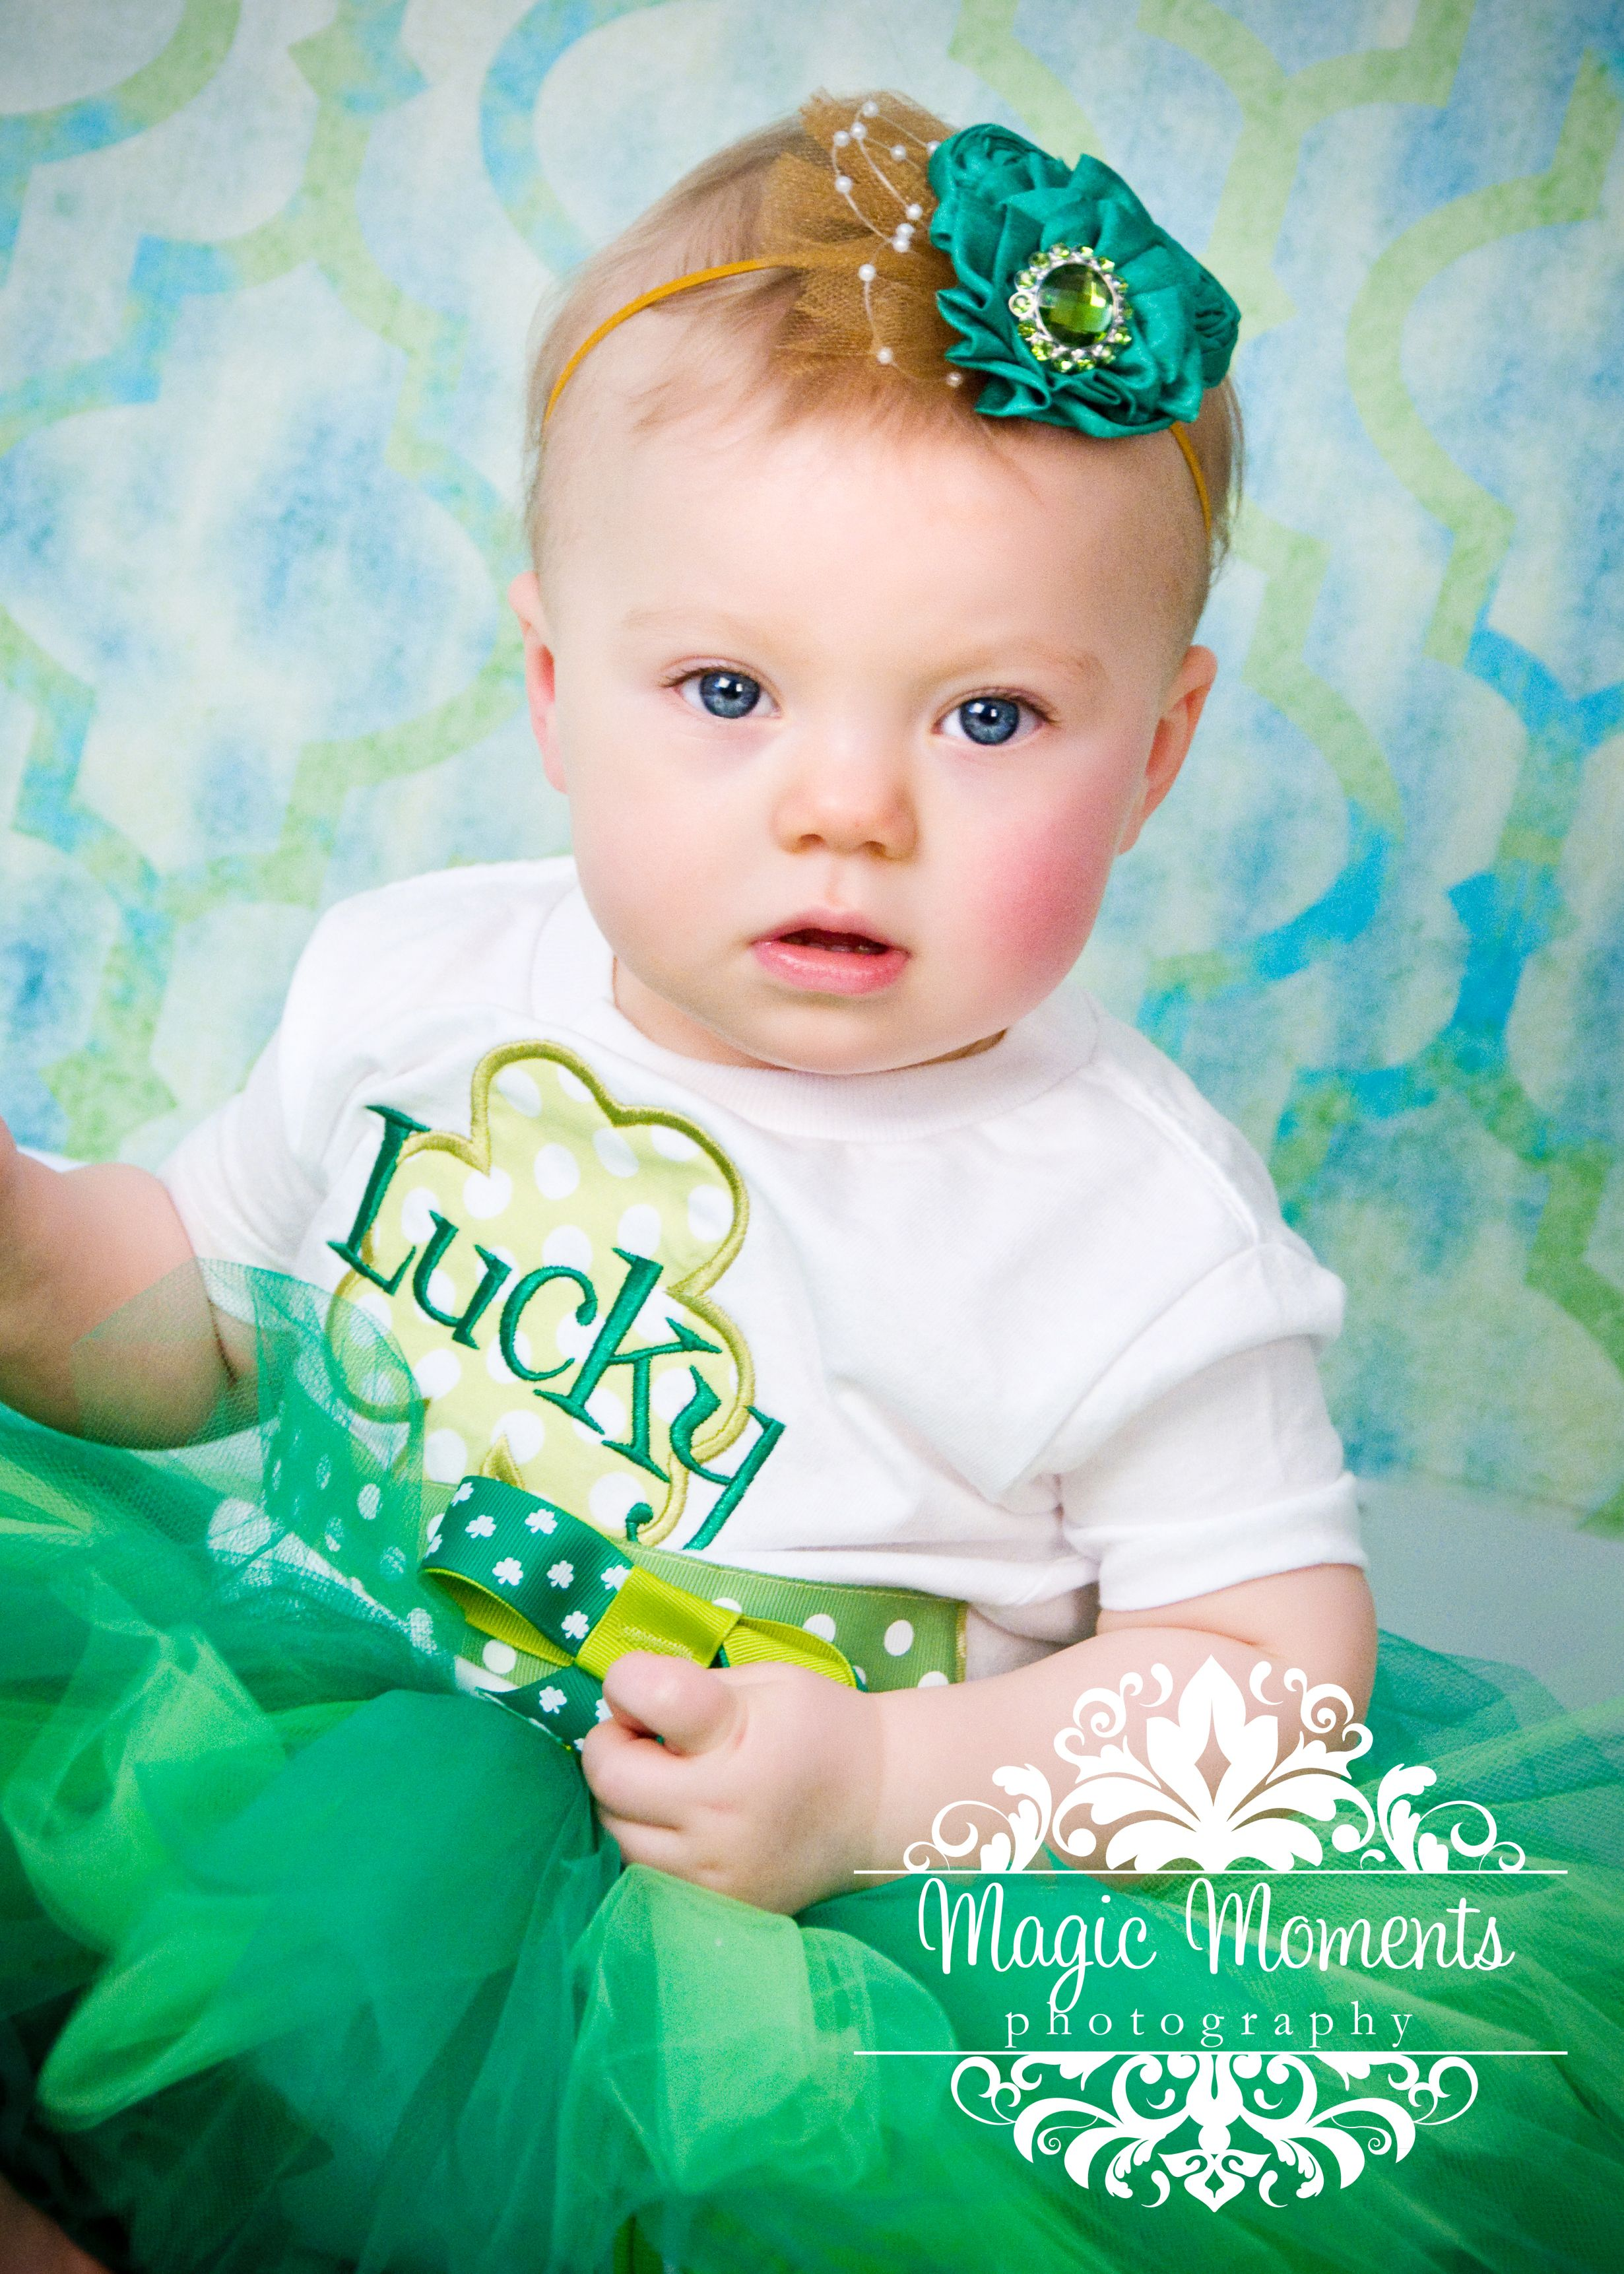 St. Pats Boutique Outfit by Whimsy Tots Boutique on Etsy  www.facebook.com/MagicMomentsPhotographyLLC